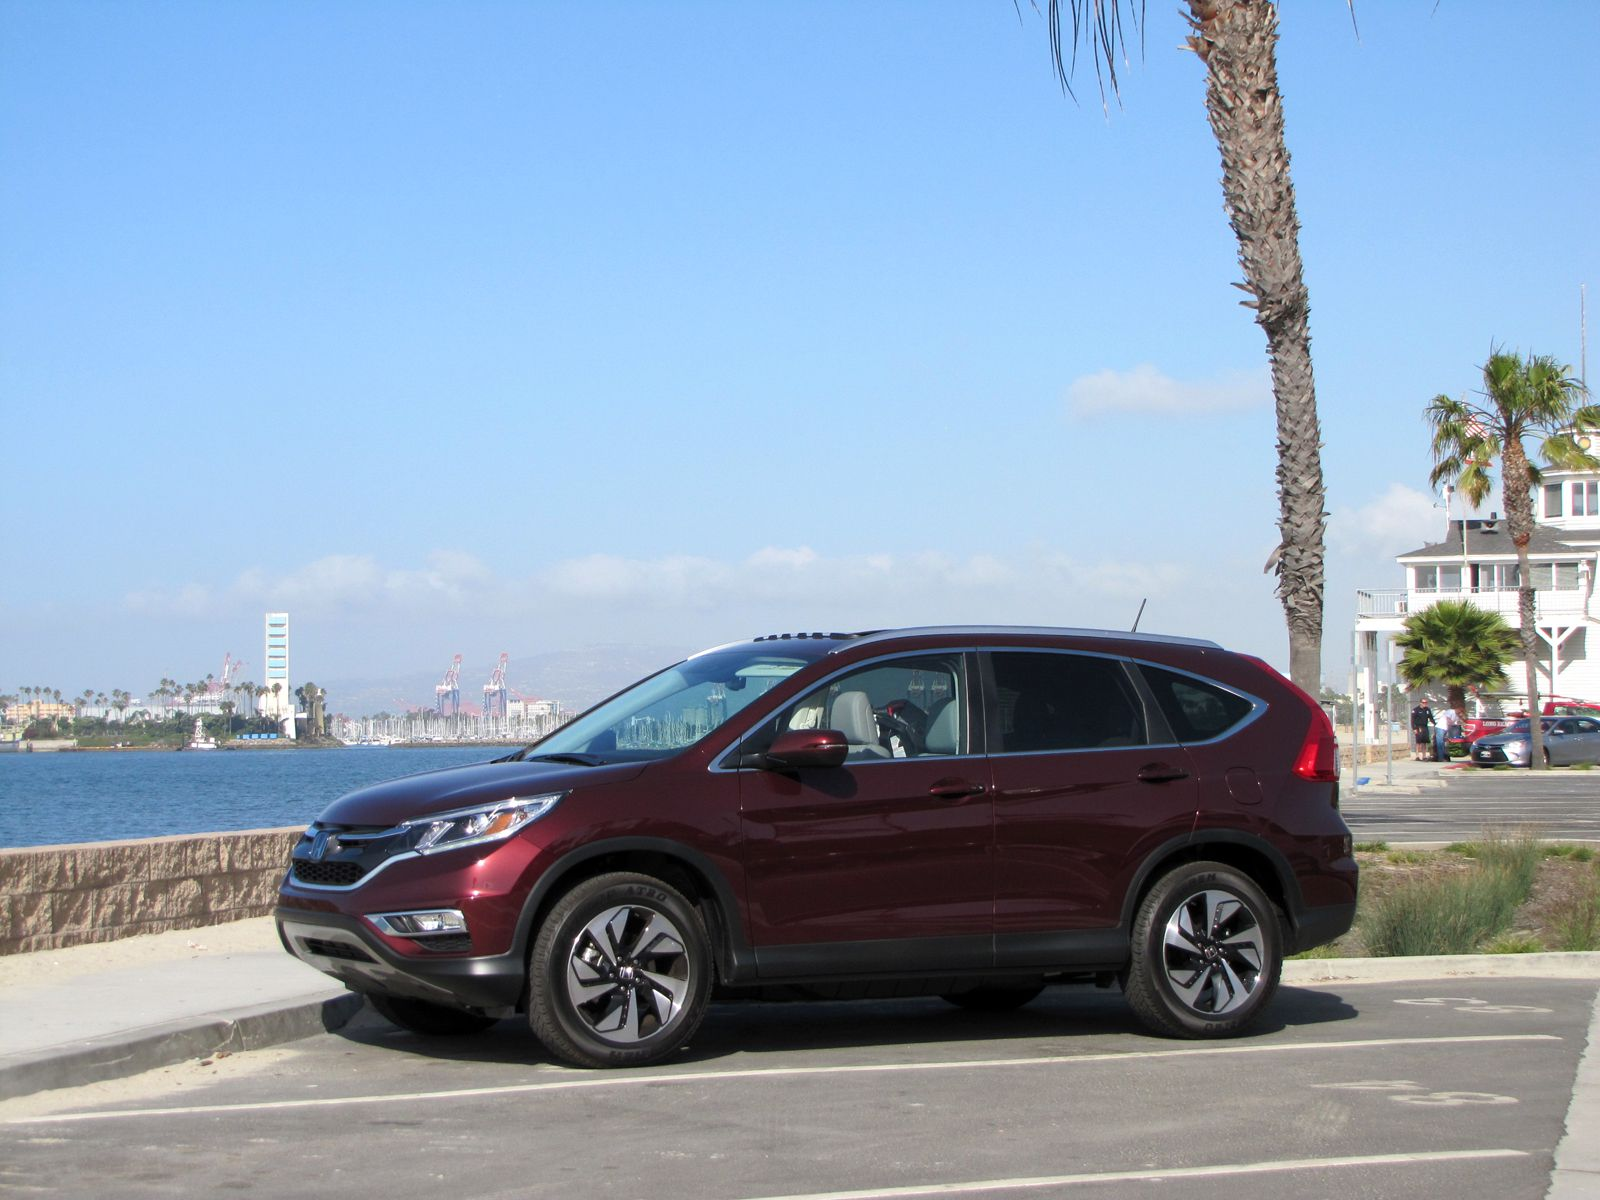 2016 honda cr v road test review. Black Bedroom Furniture Sets. Home Design Ideas